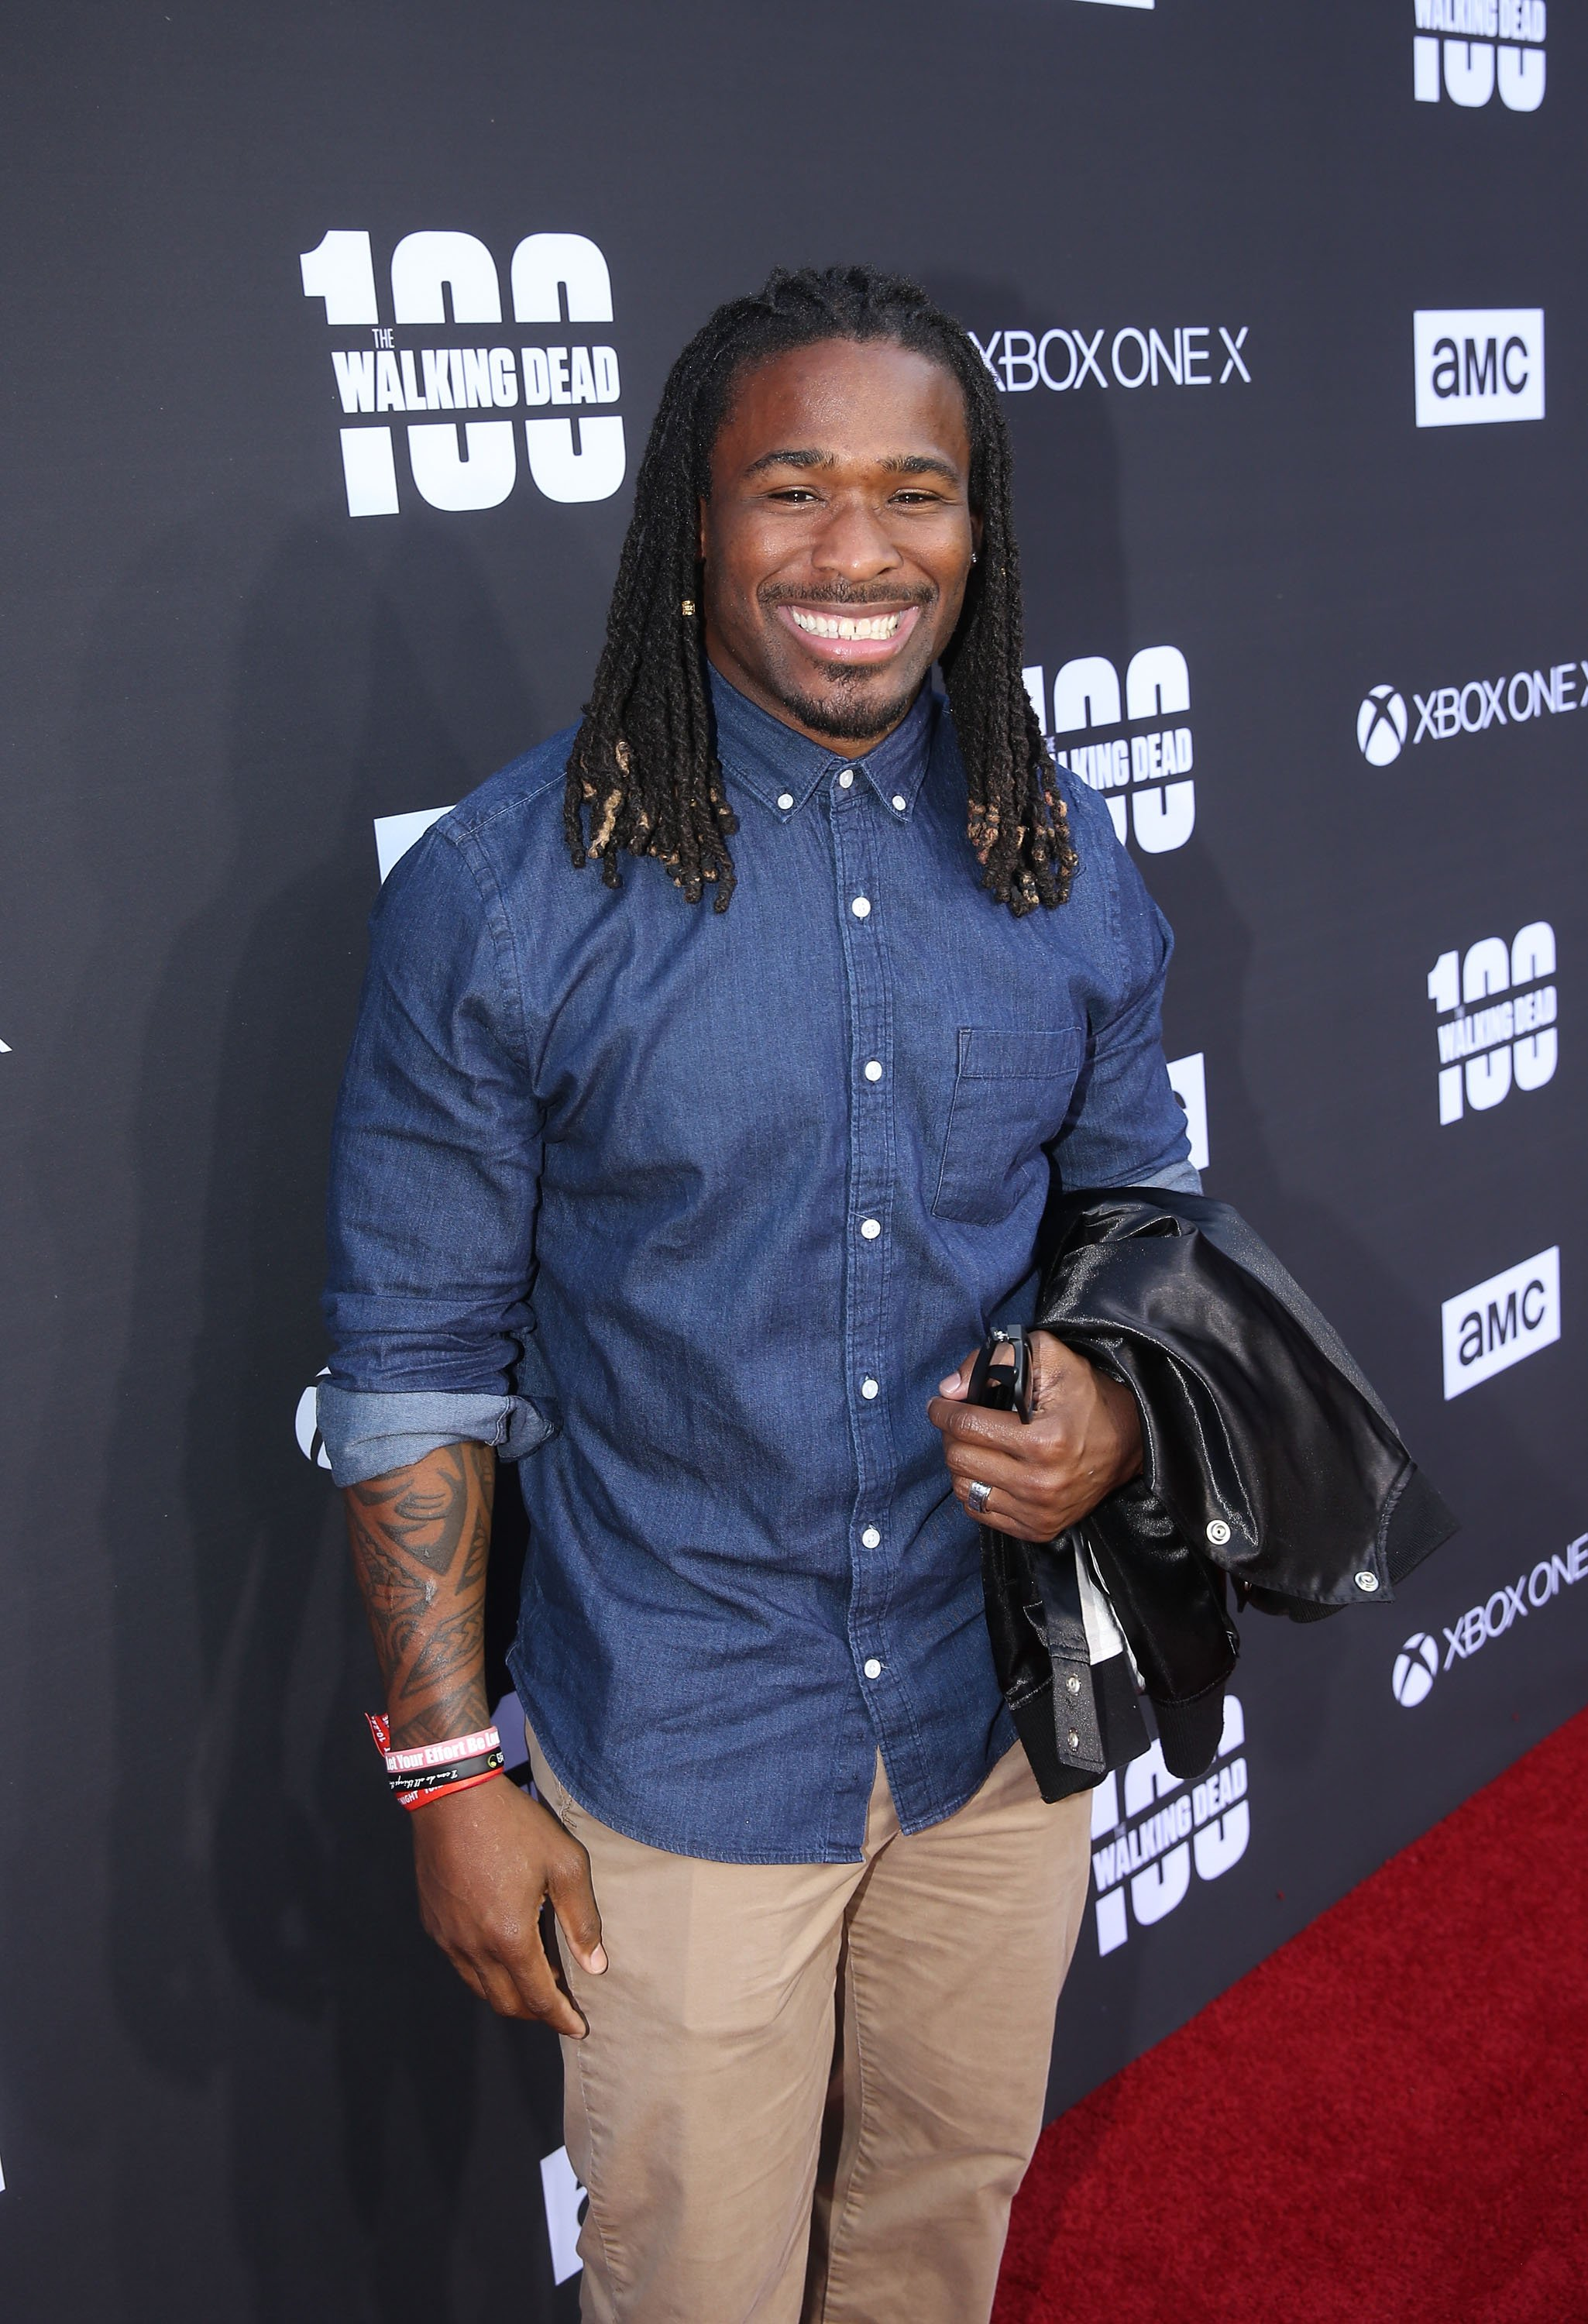 DeAngelo Williams at The Walking Dead 100th Episode Premiere in 2017. | Source: Getty Images